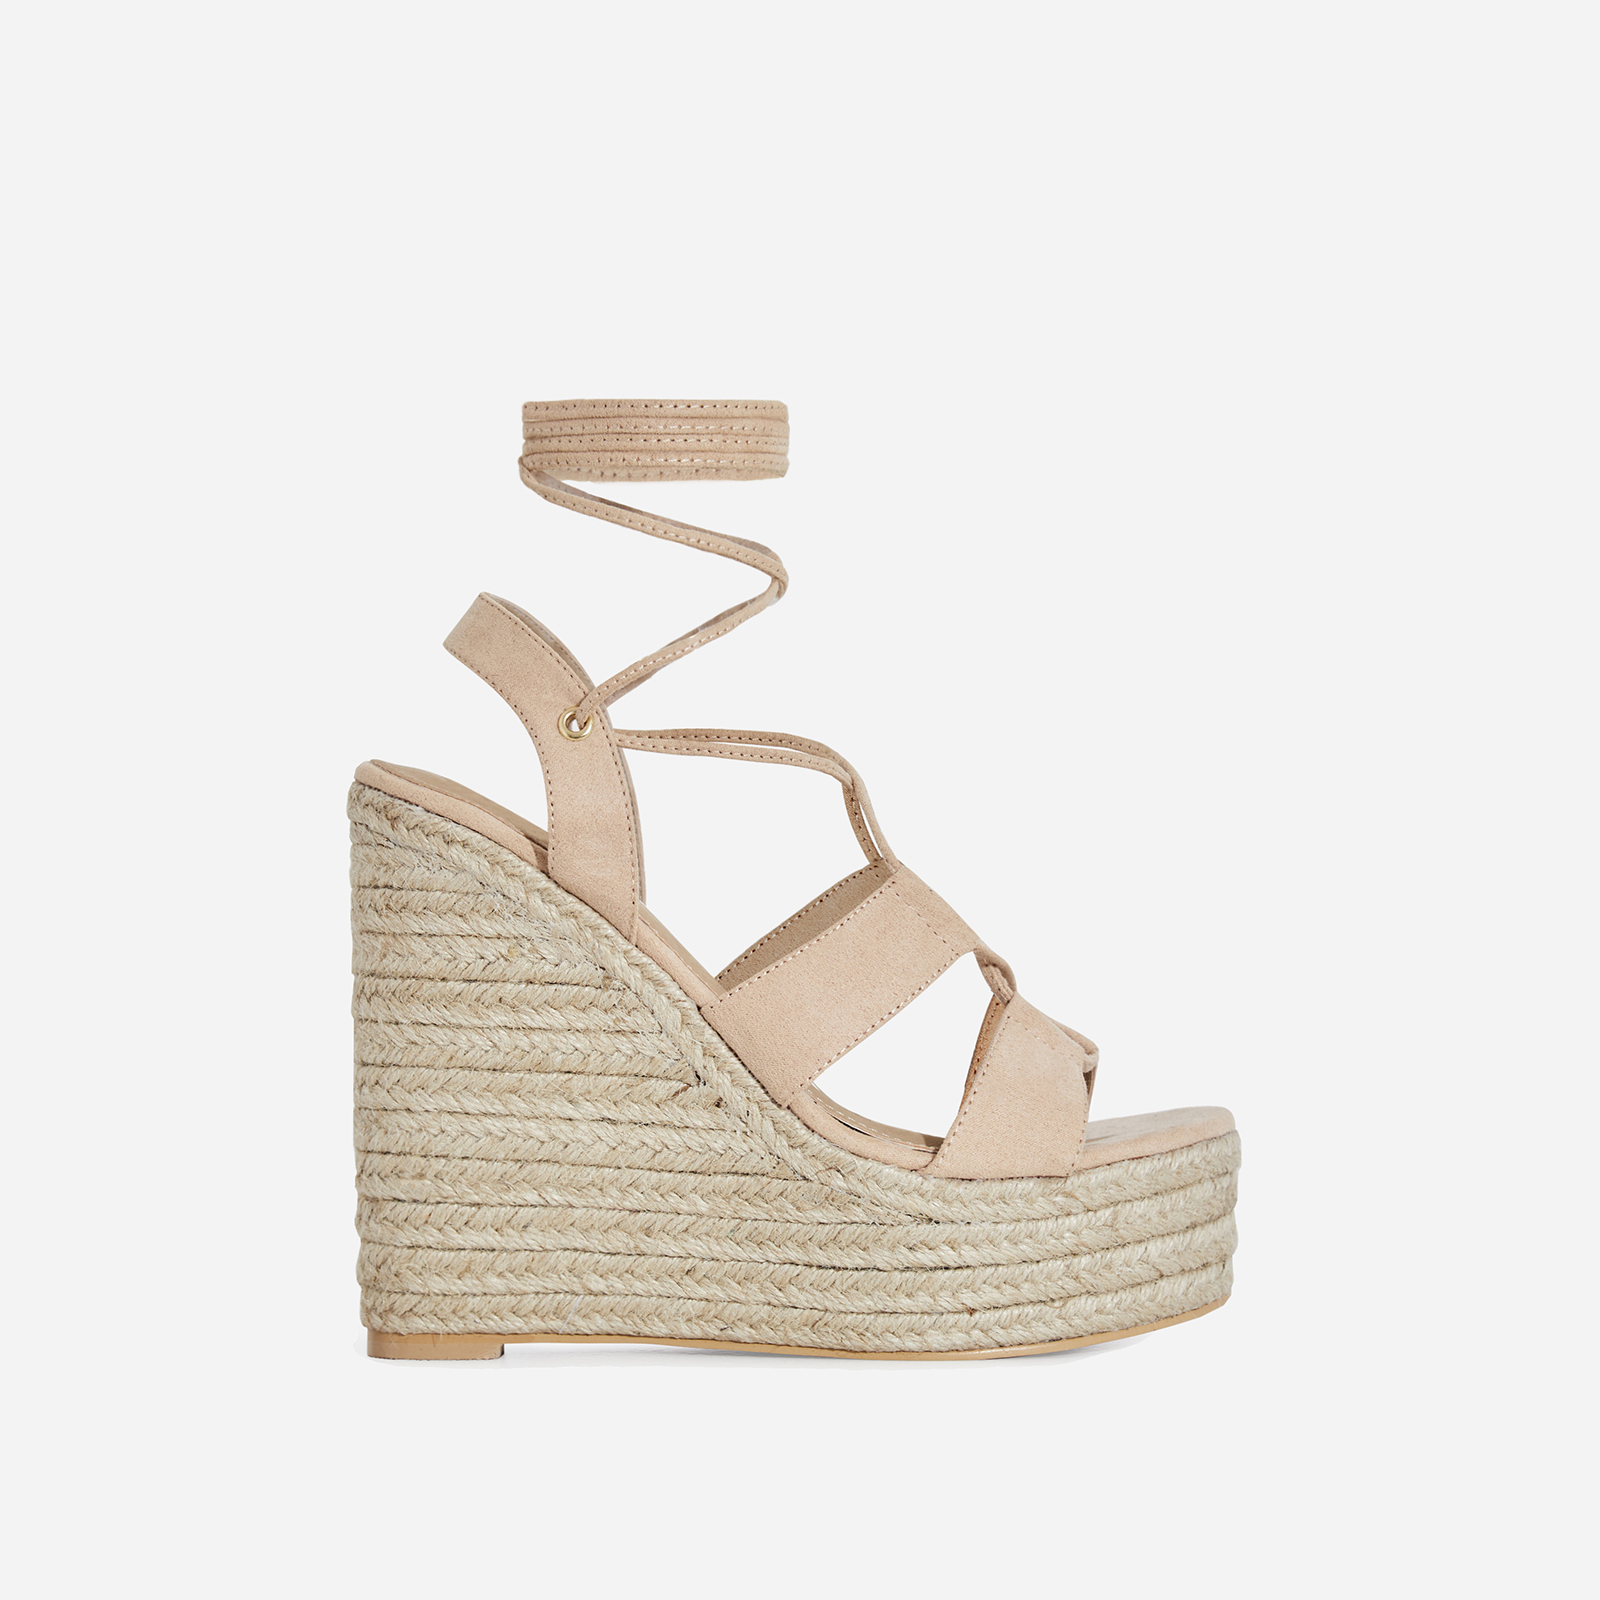 Emelia Lace Up Espadrille Wedge Platform Heel In Nude Faux Suede